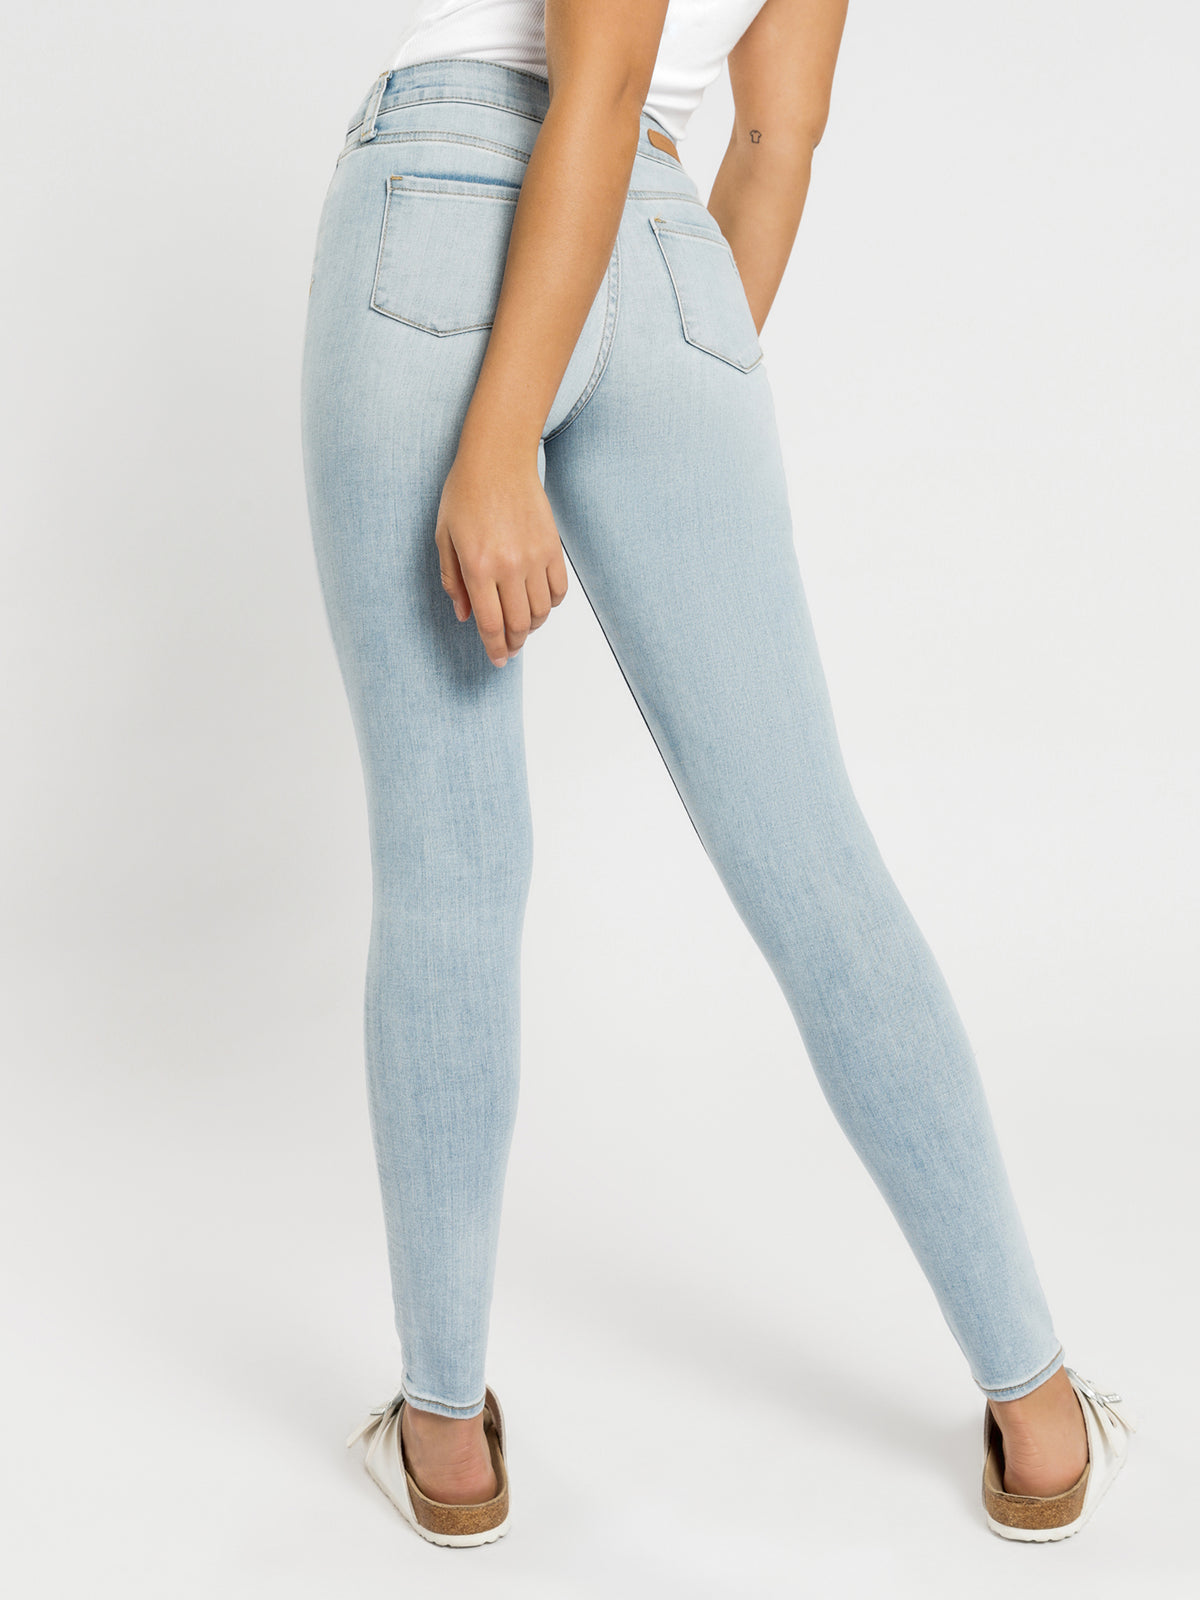 High Sarah Skinny Jeans in Summer Blues